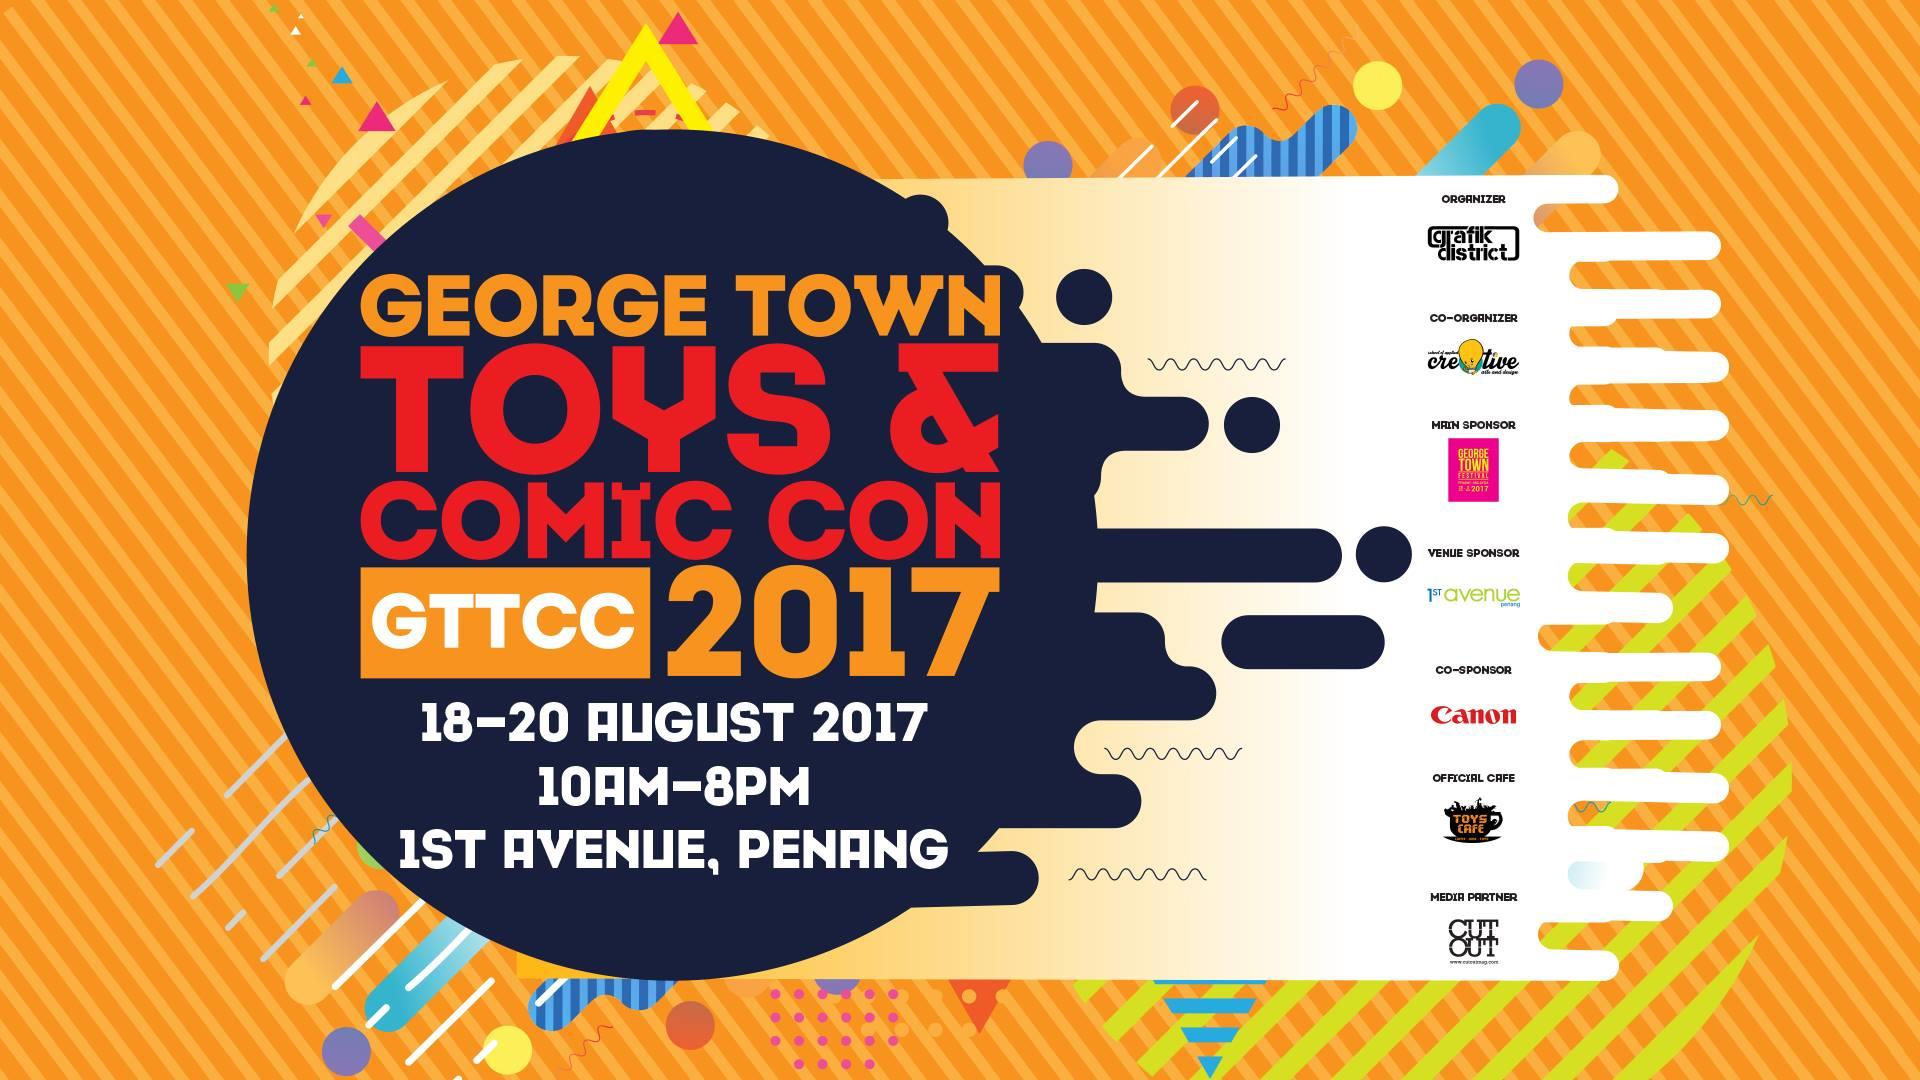 George Town Toys & Comic Con 2017